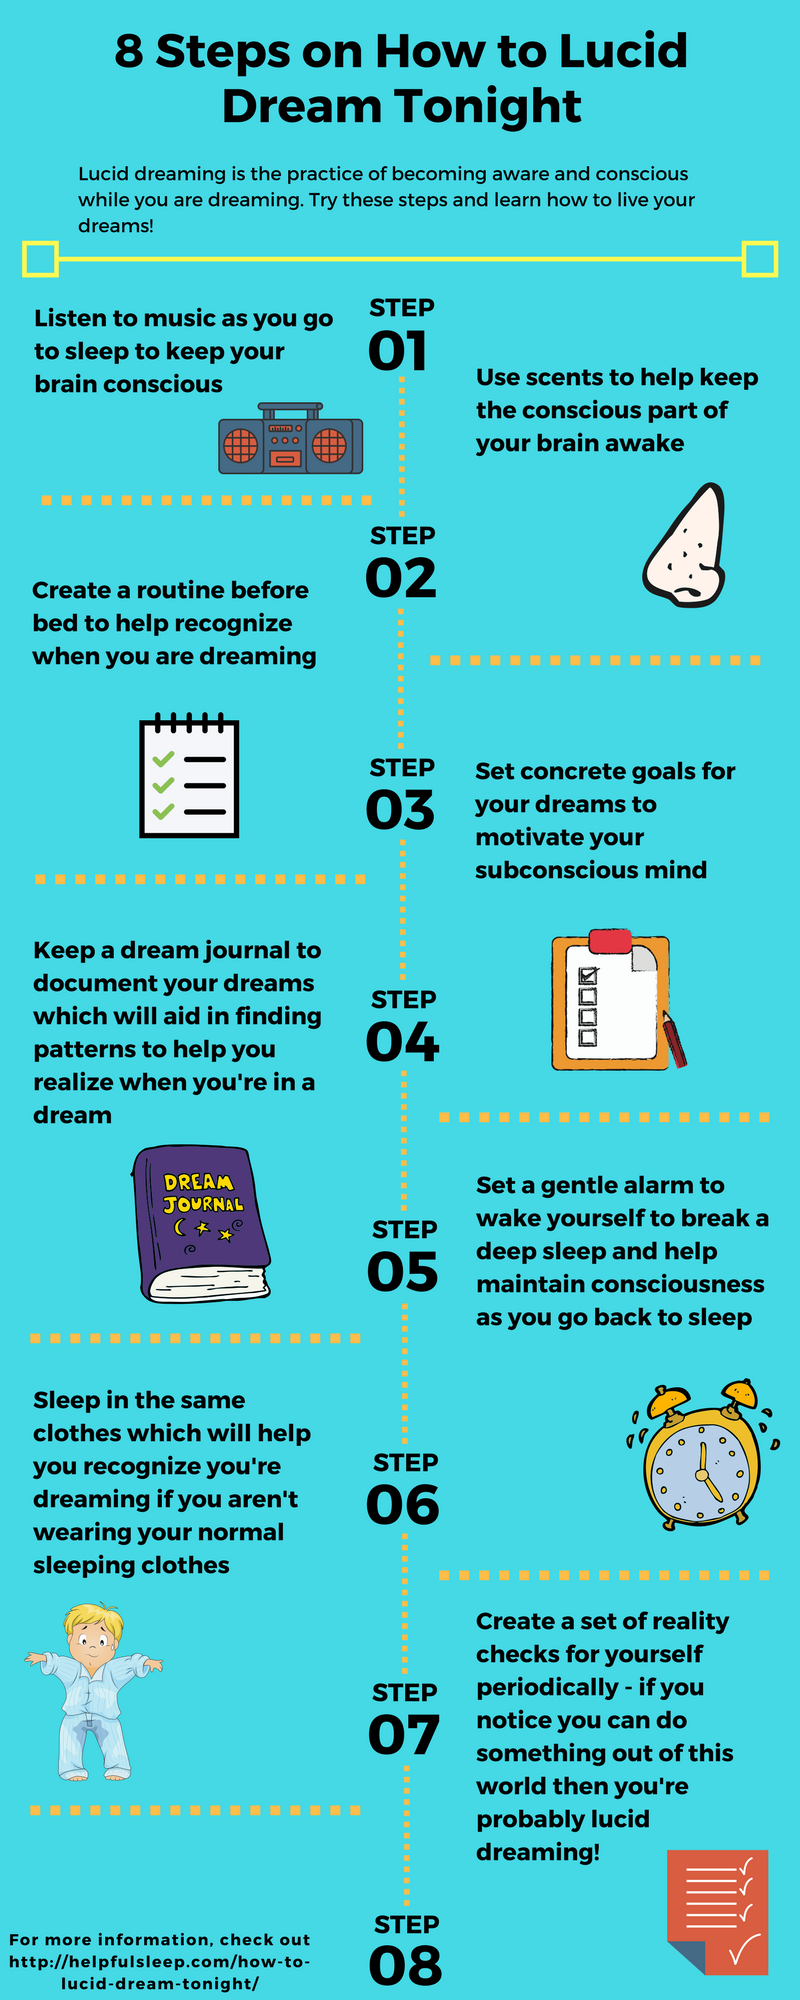 8 Steps on How to Lucid Dream Tonight Infographic